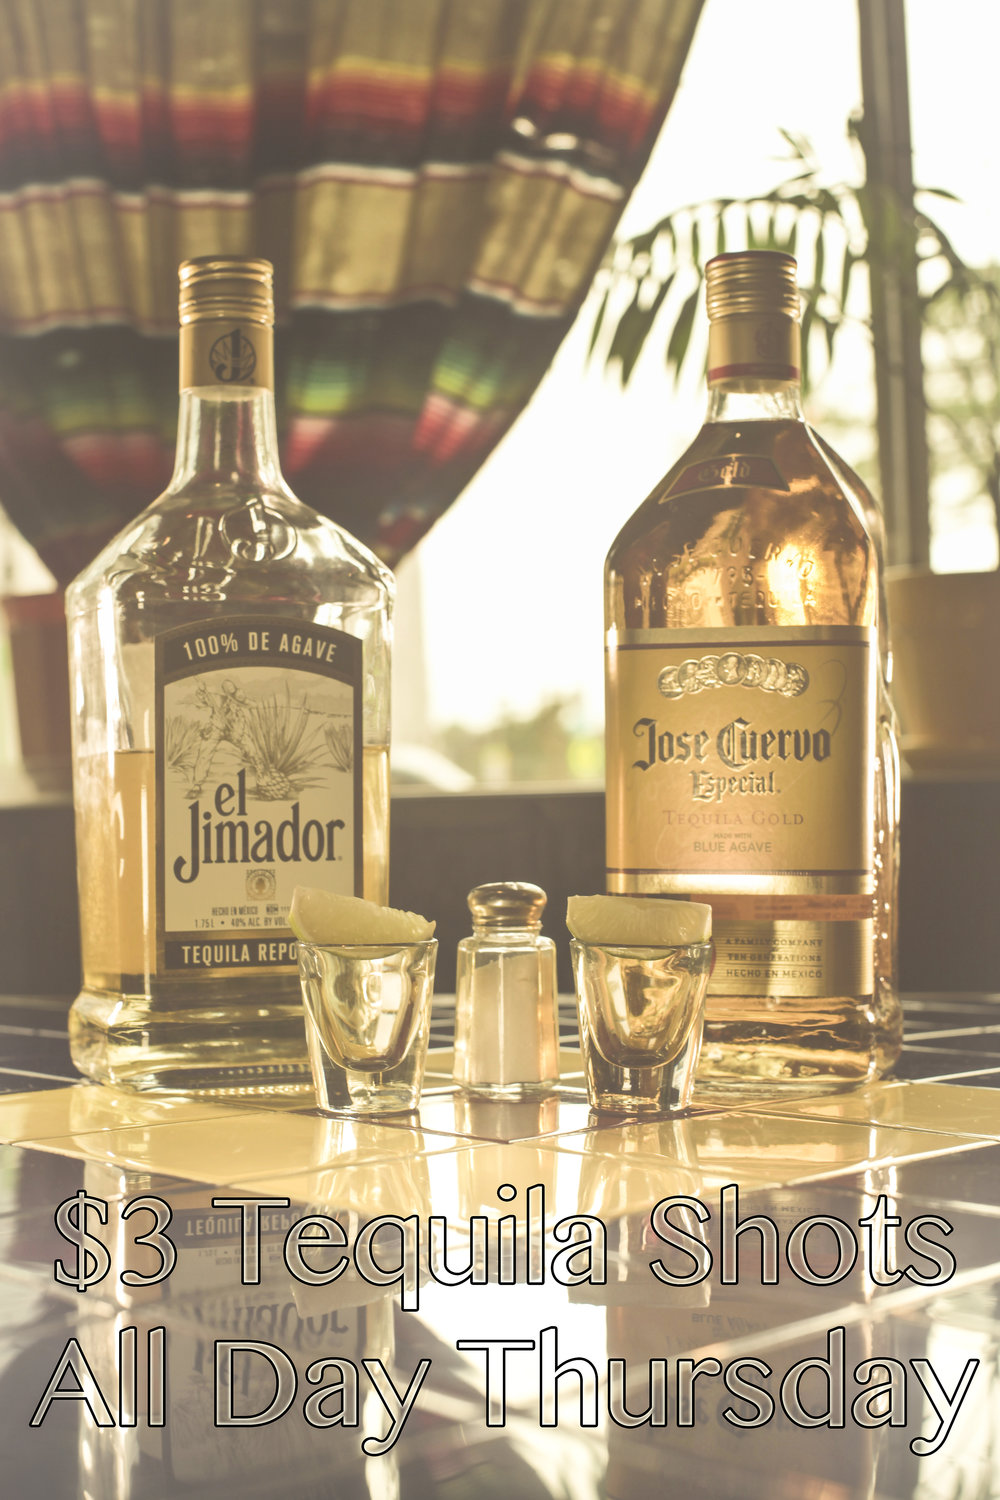 $3 El Jimador and Jose Cuervo Shots